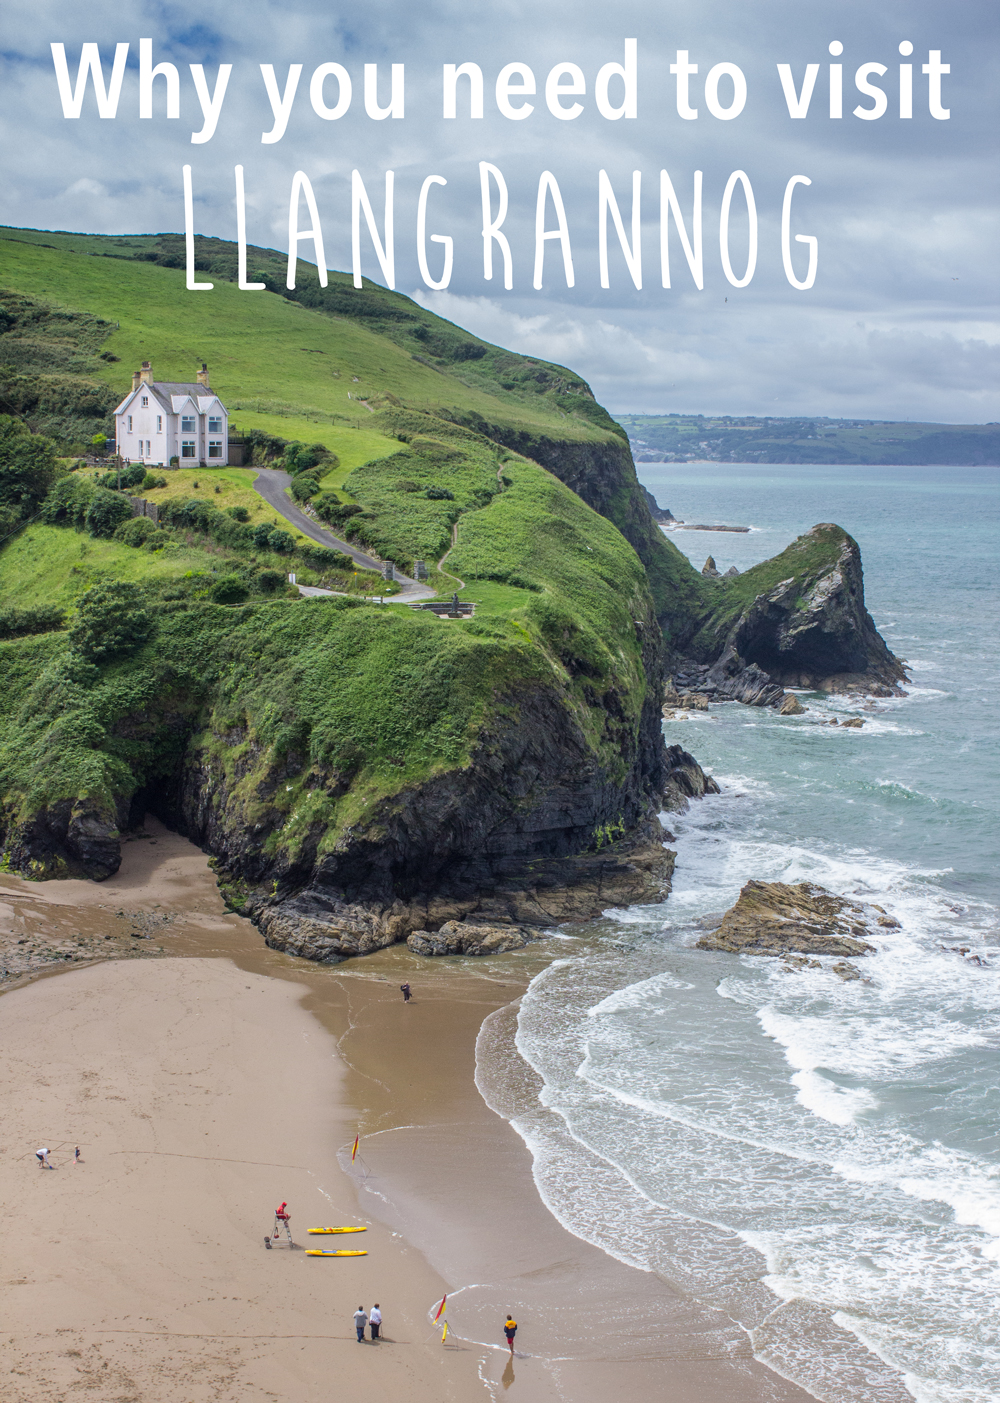 Why you need to visit Llangrannog